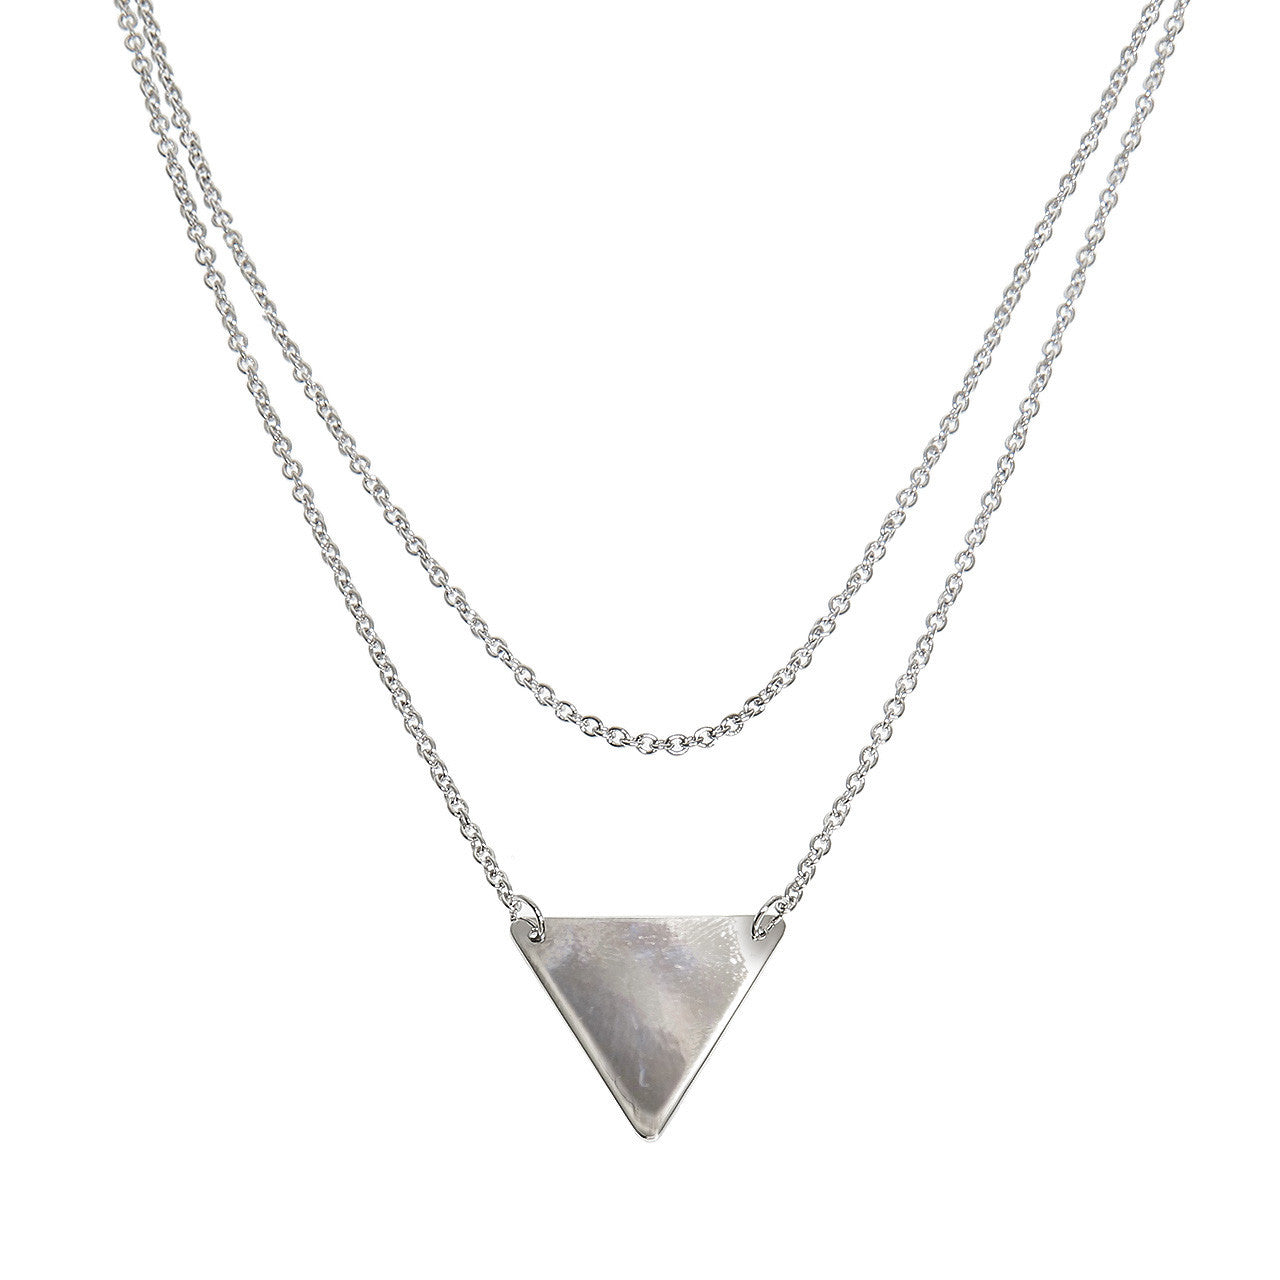 Layered Triangle Necklace